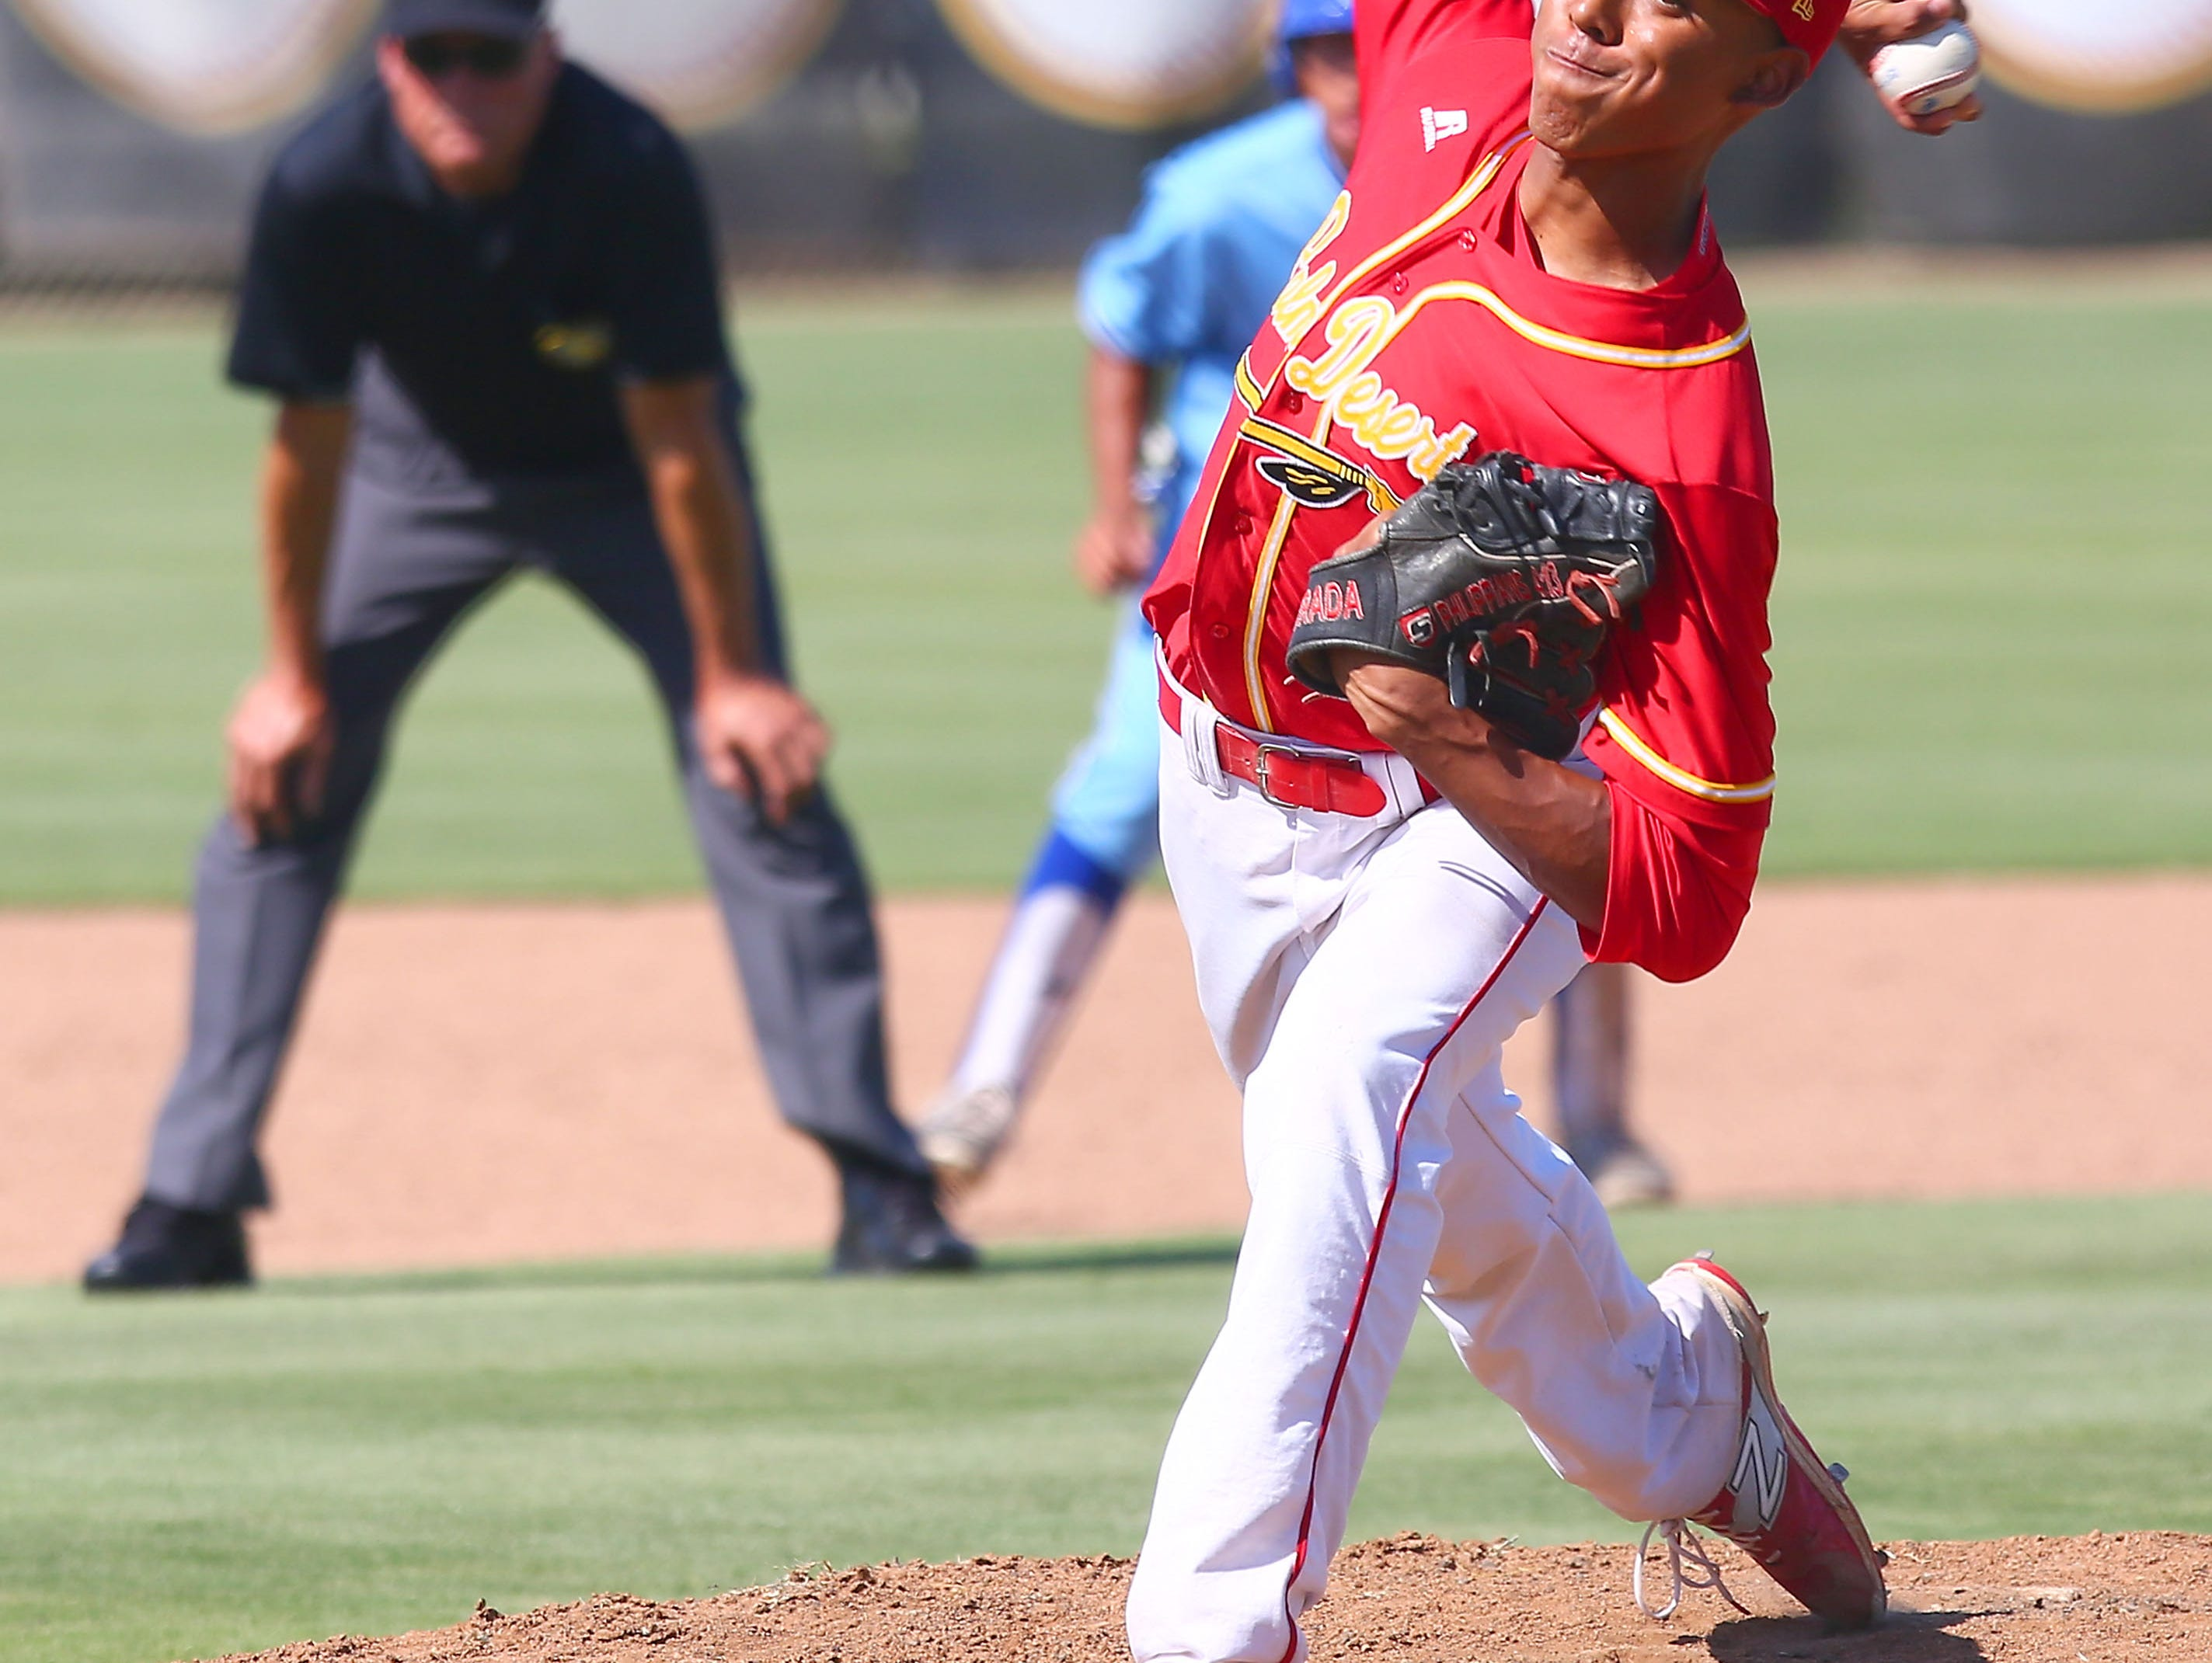 Pitcher Jeremiah Estrada pitches during the Aztec's win over El Segundo, May 27, 2016.